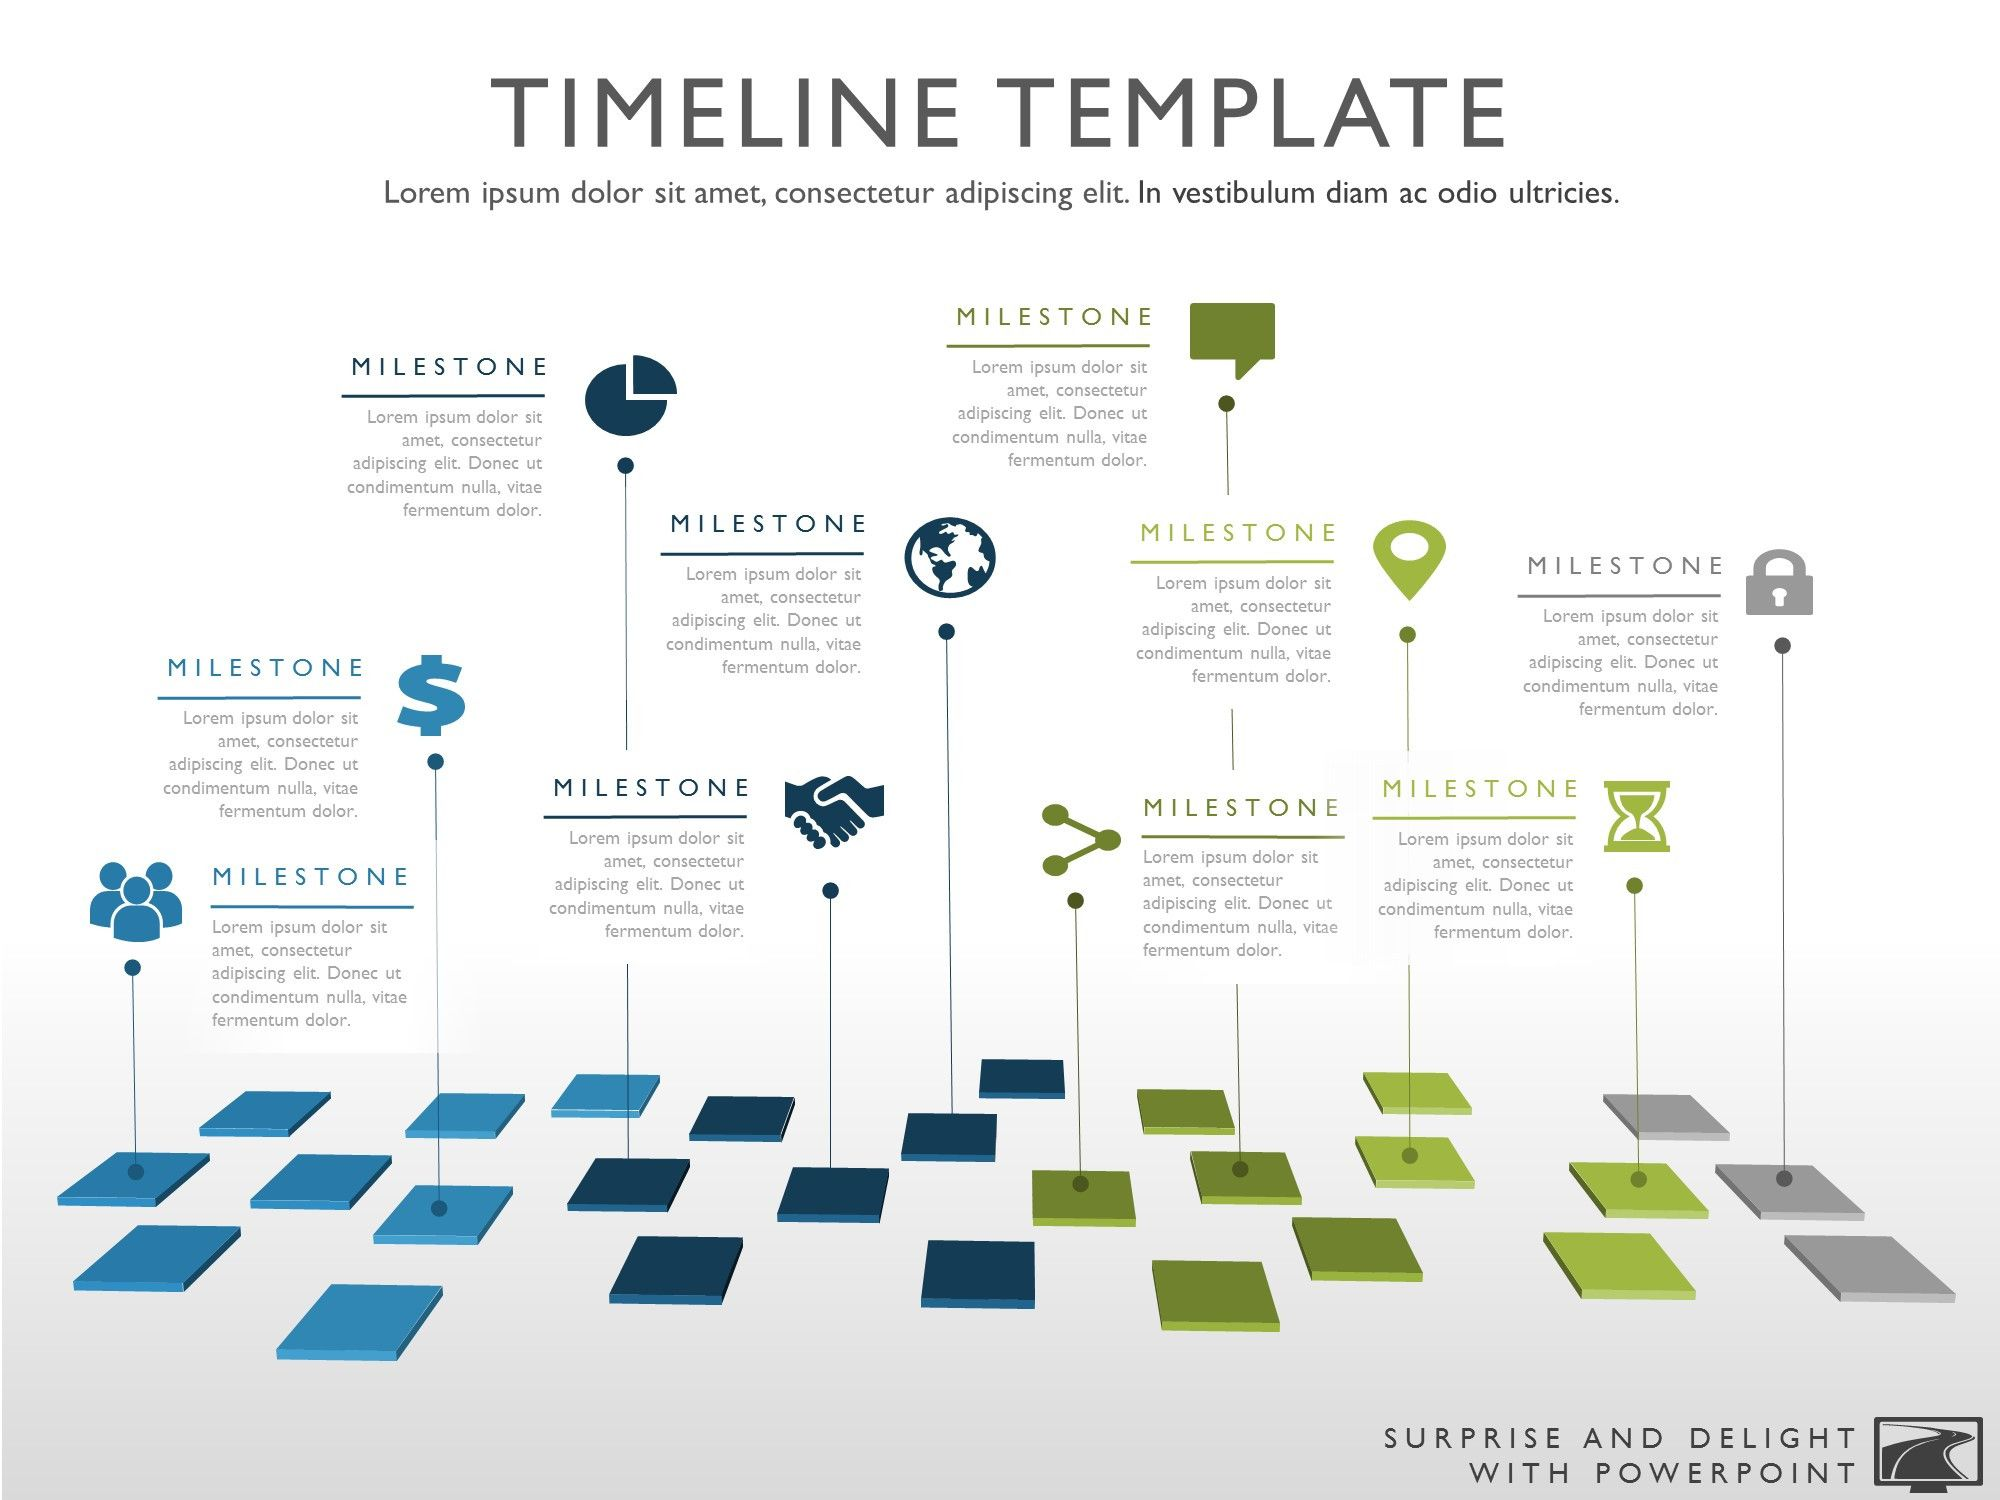 timline template - timeline template my product roadmap work 1